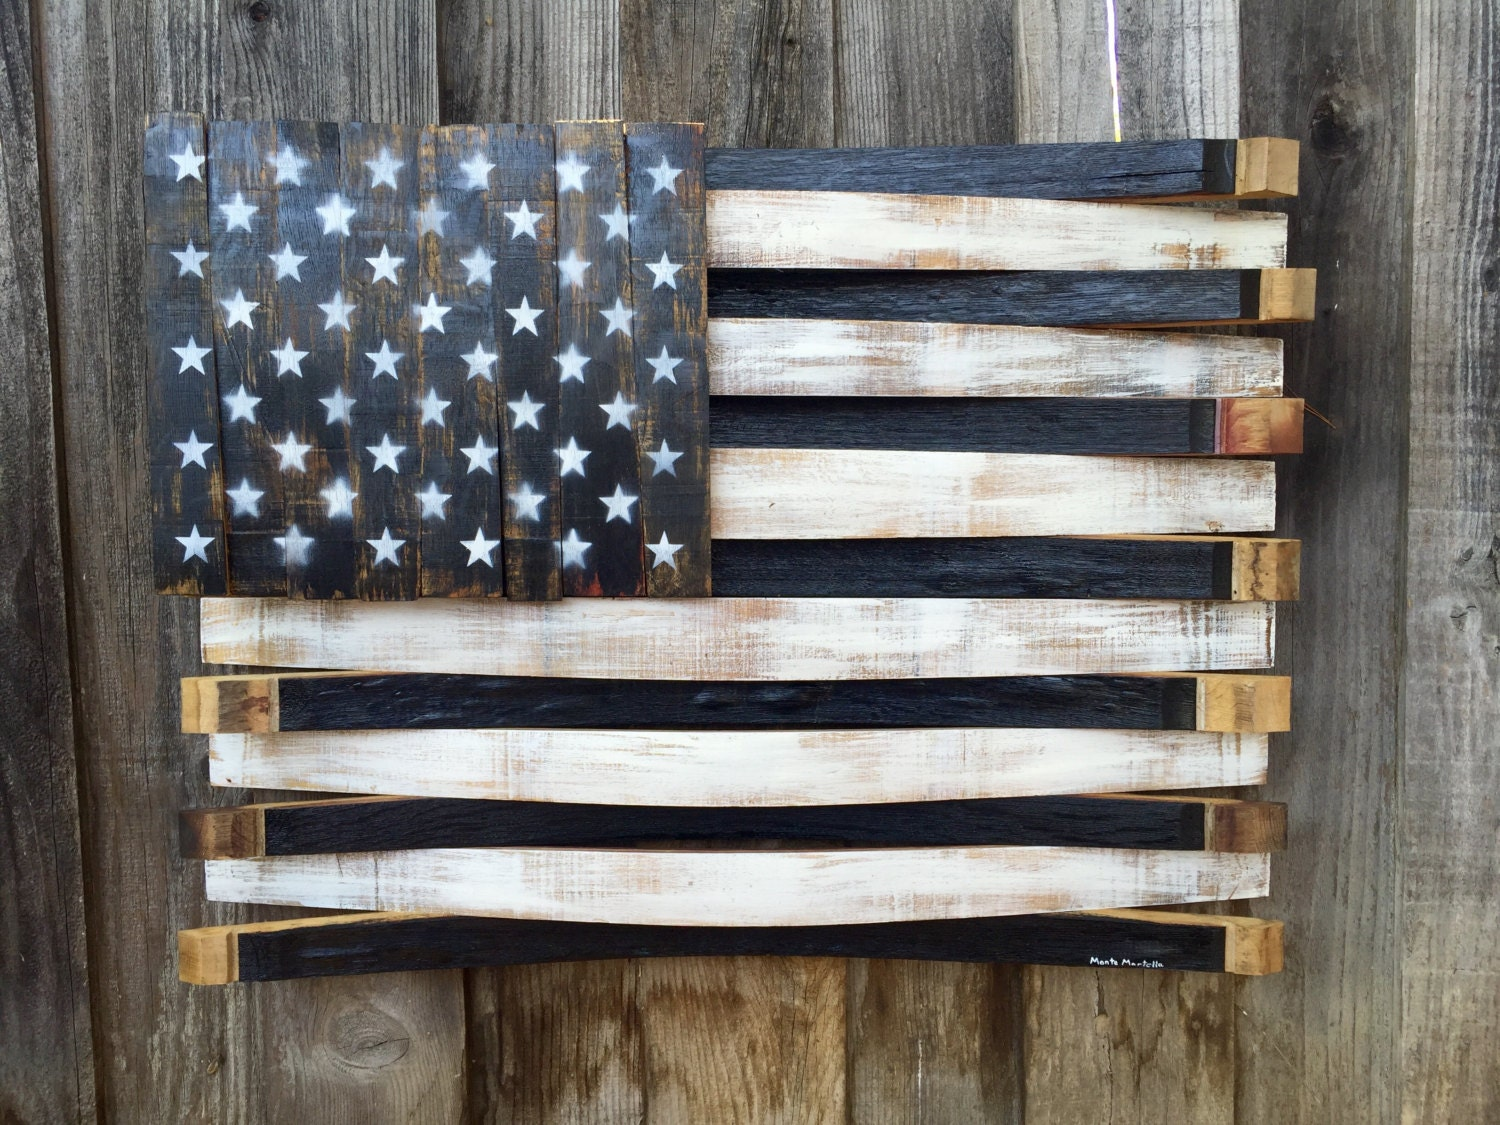 Black and White American Flag Sign -American Flag Sign -Wine Barrel Wood  American Flag - Wood American Flag Etsy